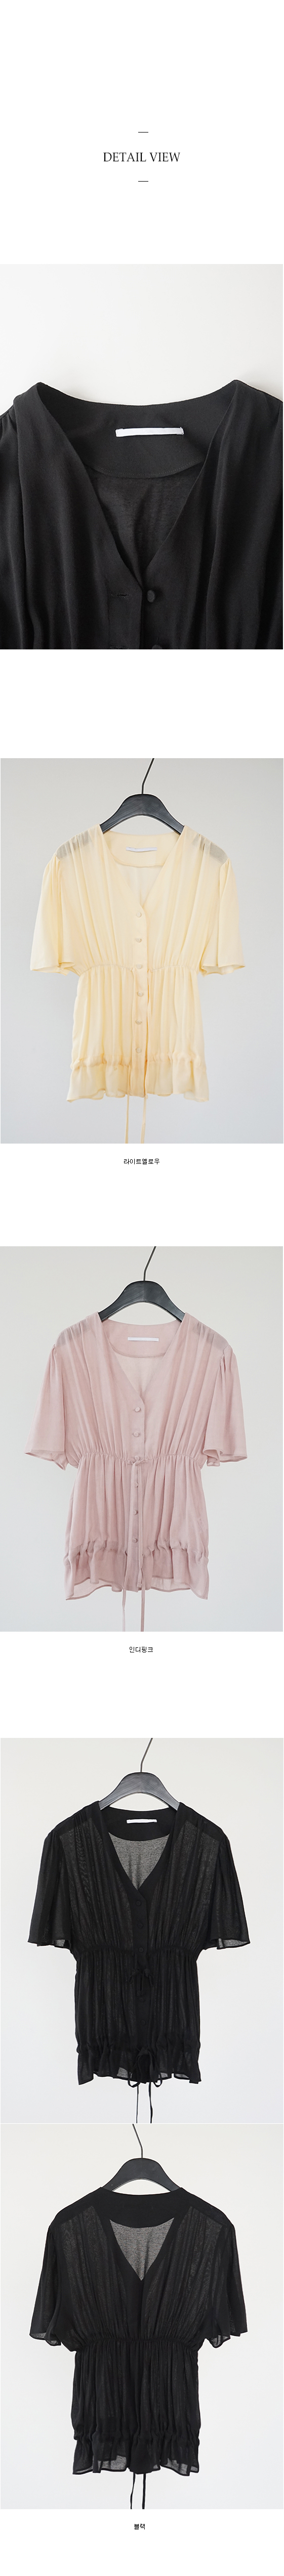 V-neck double strap blouse (3colors)